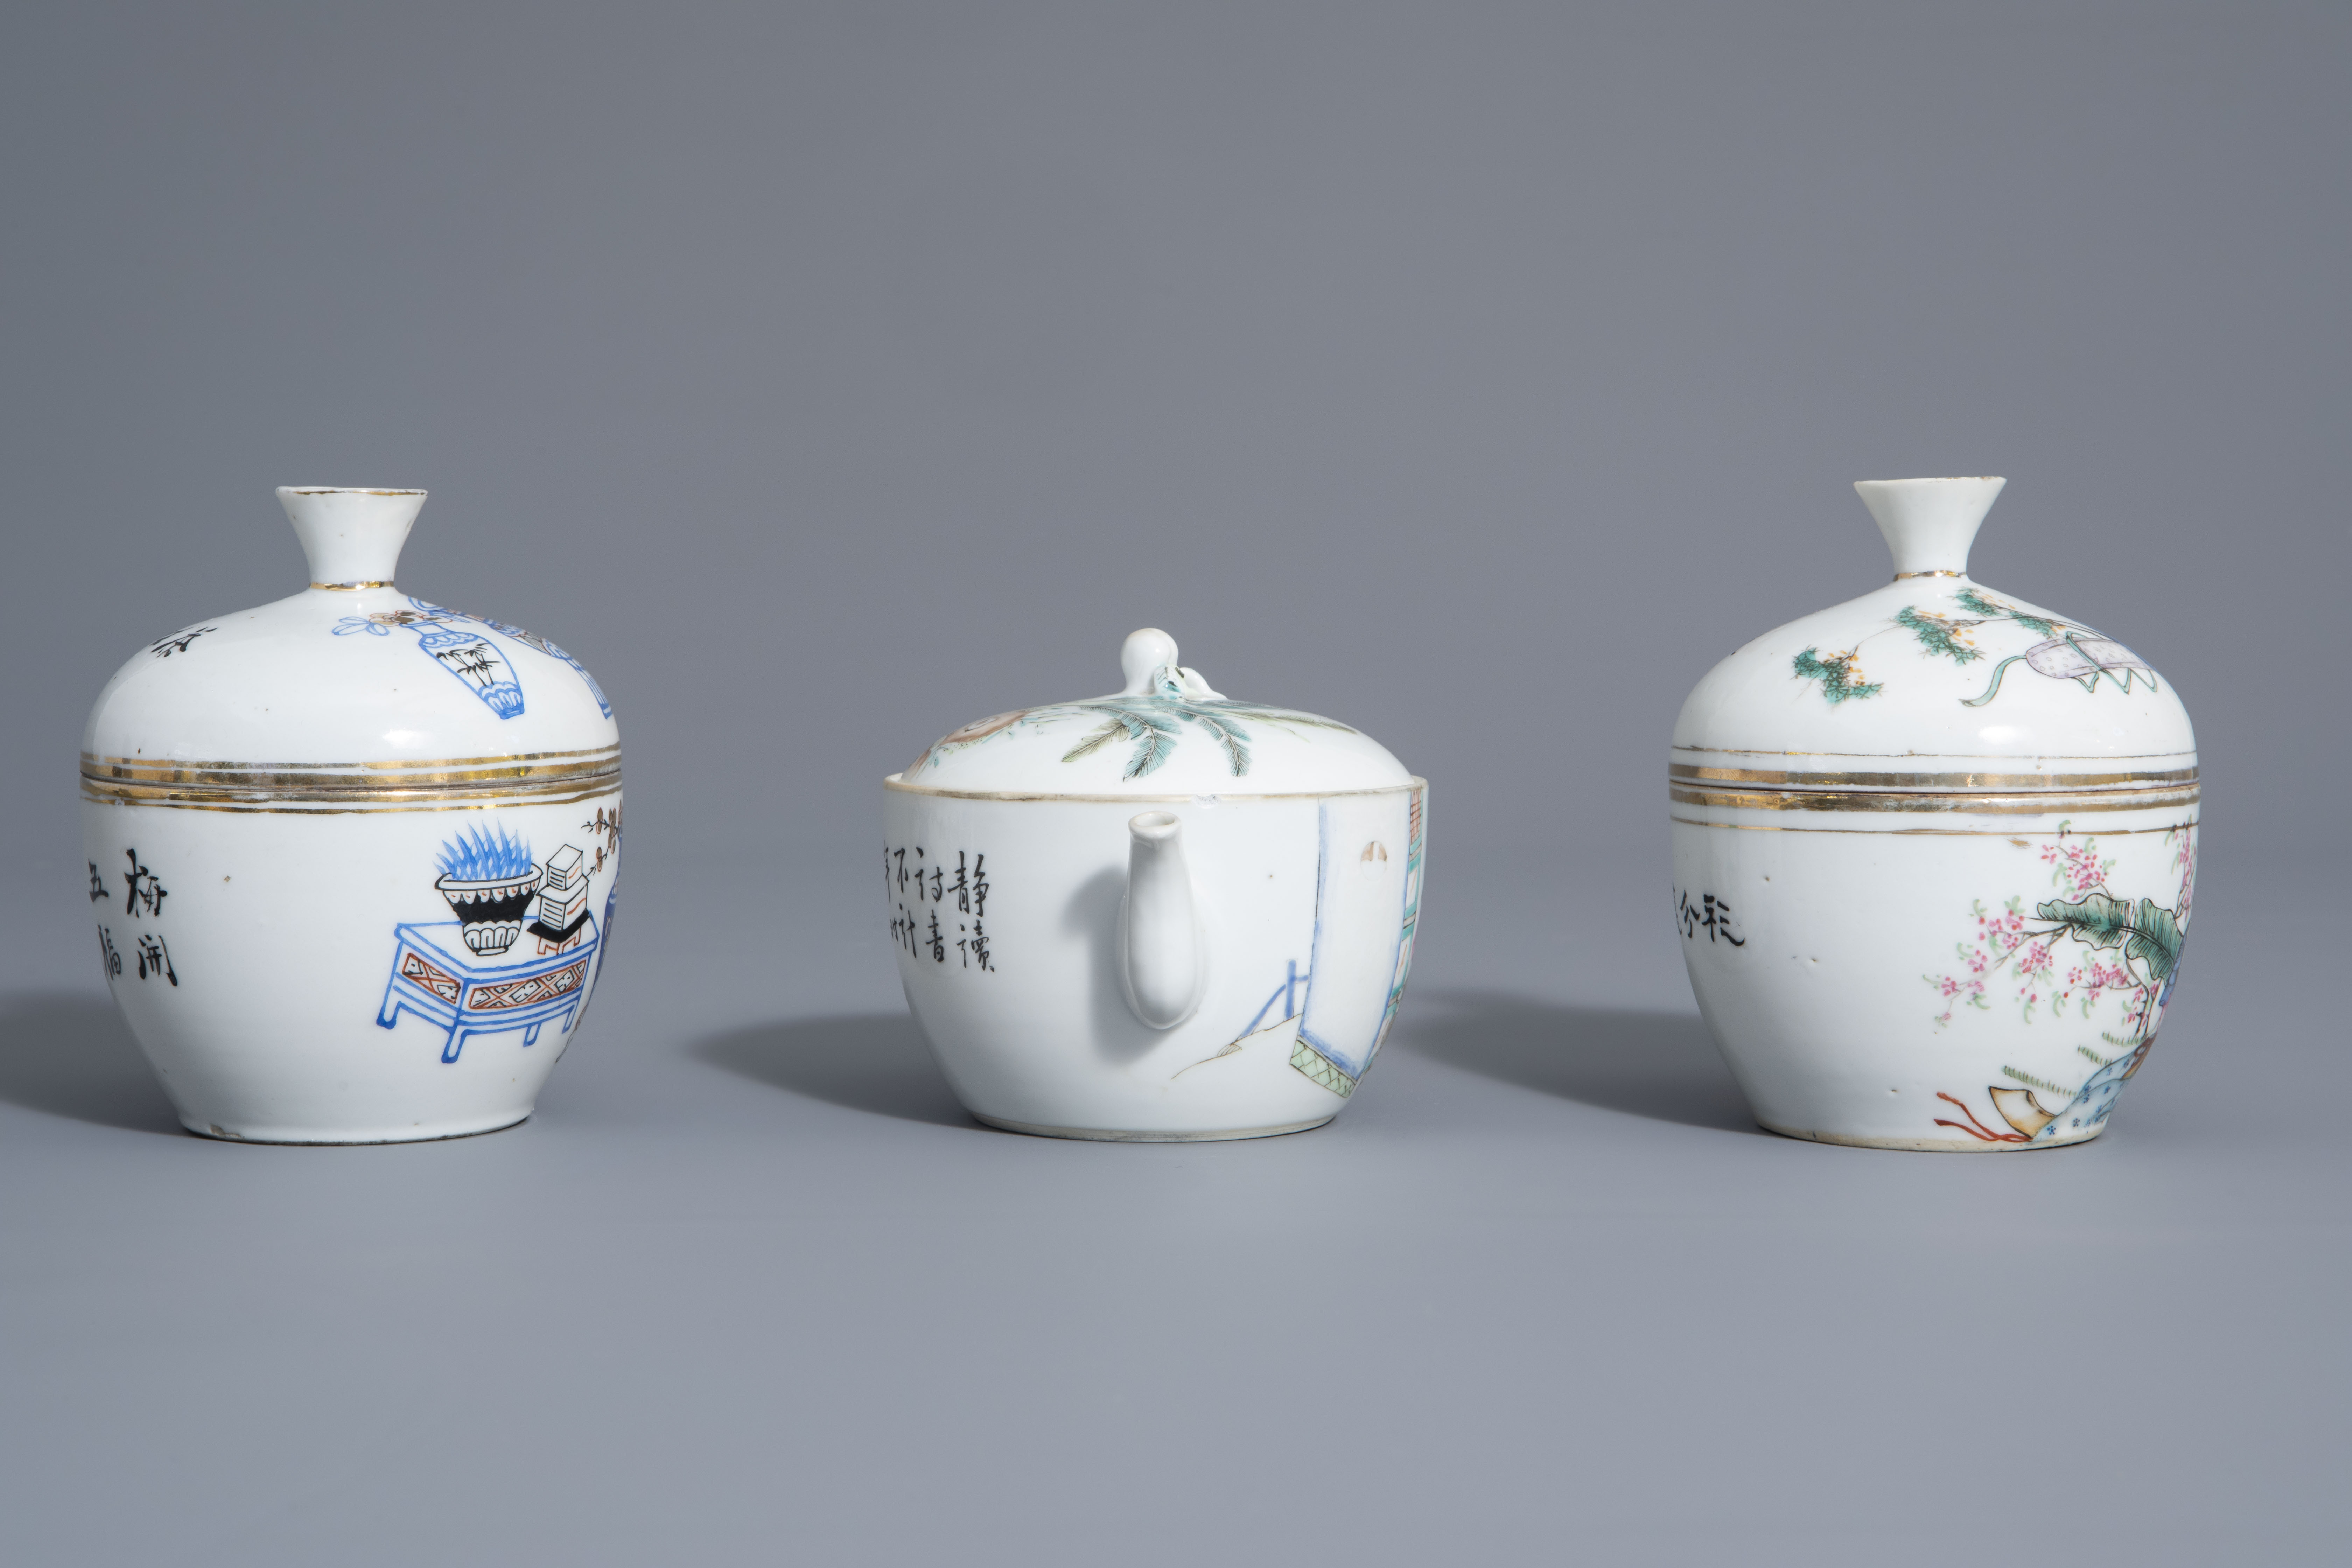 A varied collection of Chinese famille rose and blue and white porcelain, 19th/20th C. - Image 3 of 14